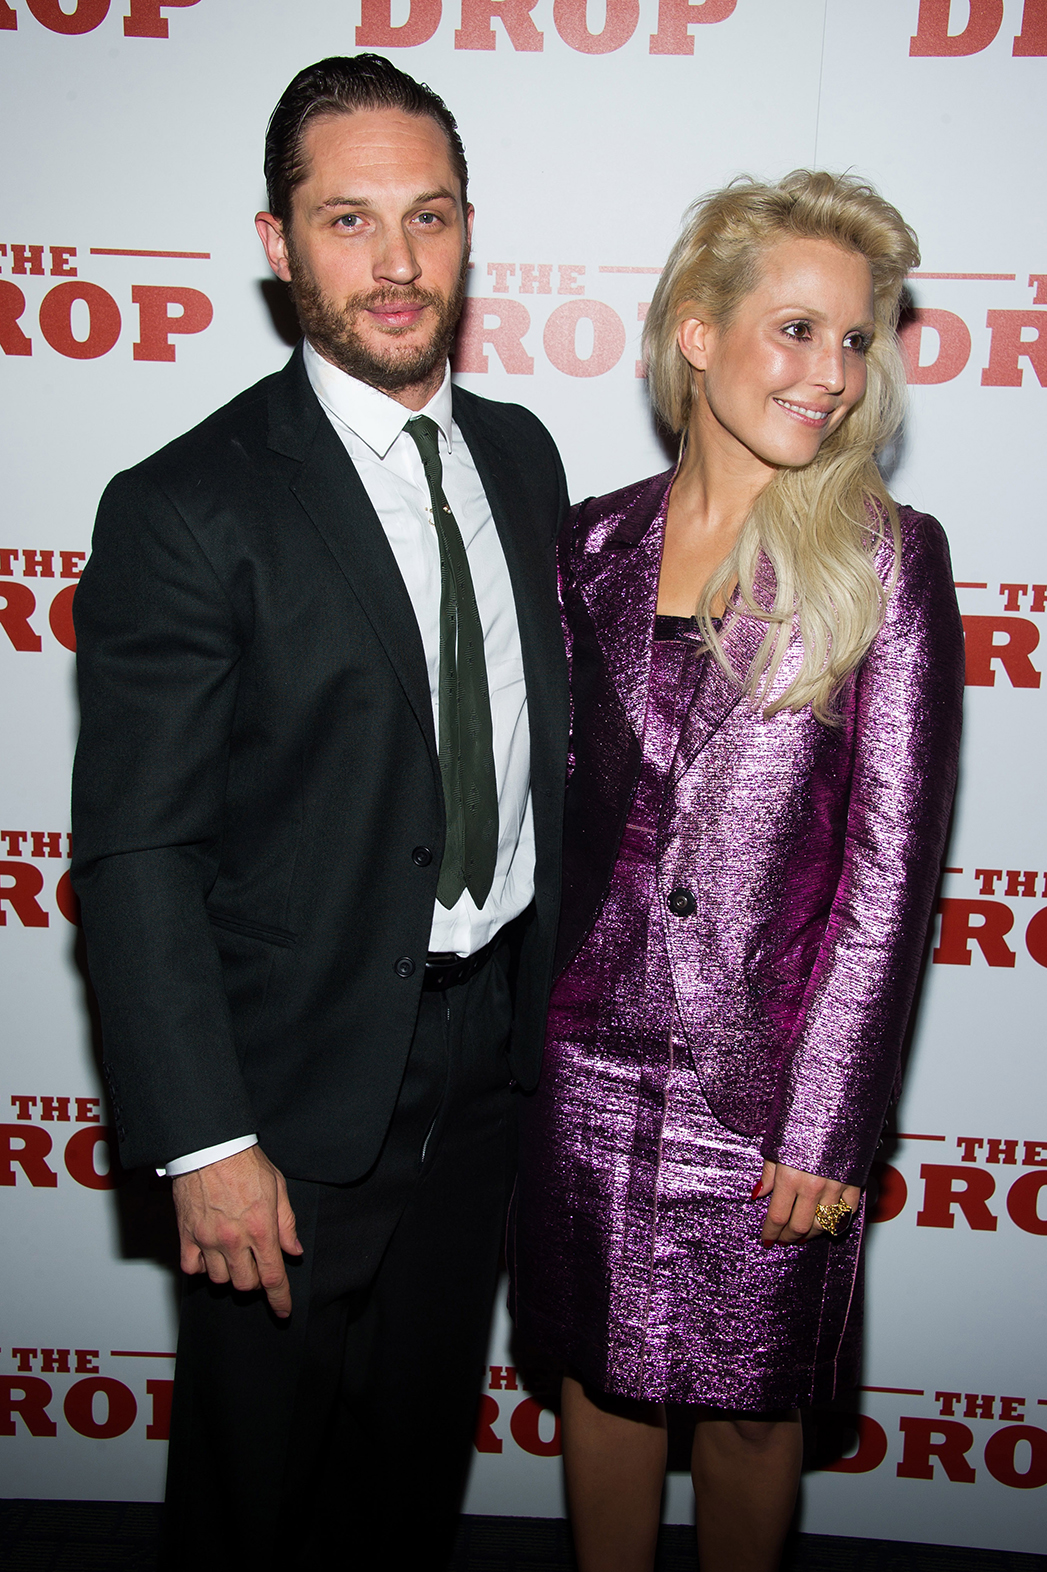 Tom Hardy Noomi Rapace The Drop Premiere P 2014